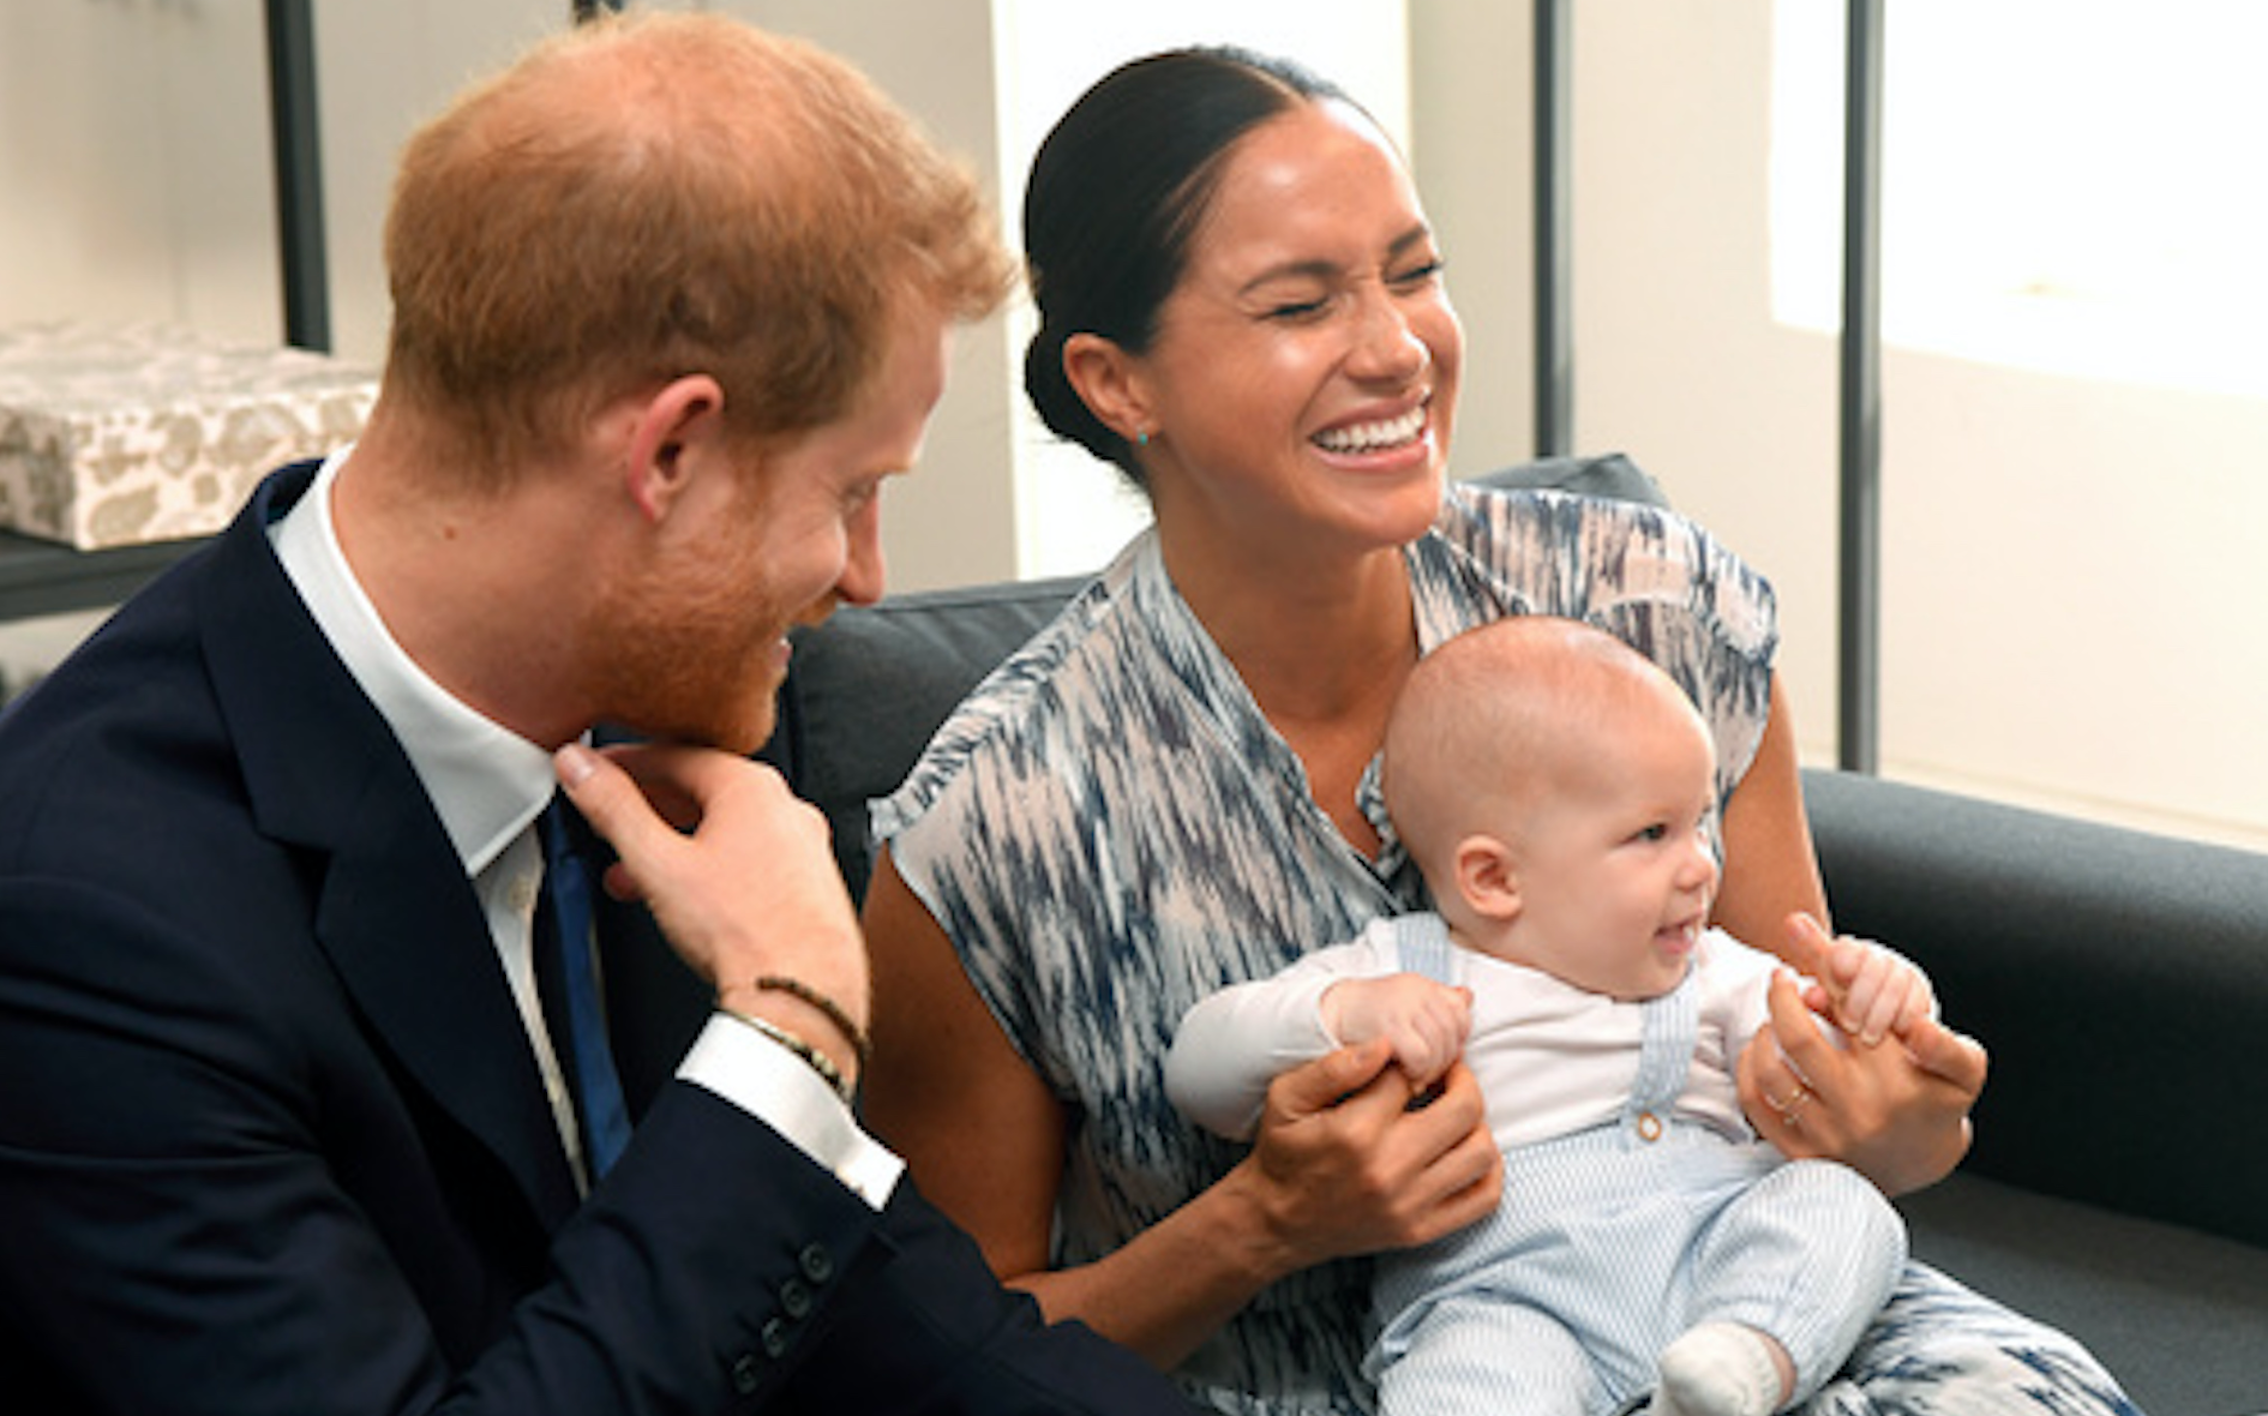 Meghan Markle reveals baby Archie is trying to walk at 10 months old